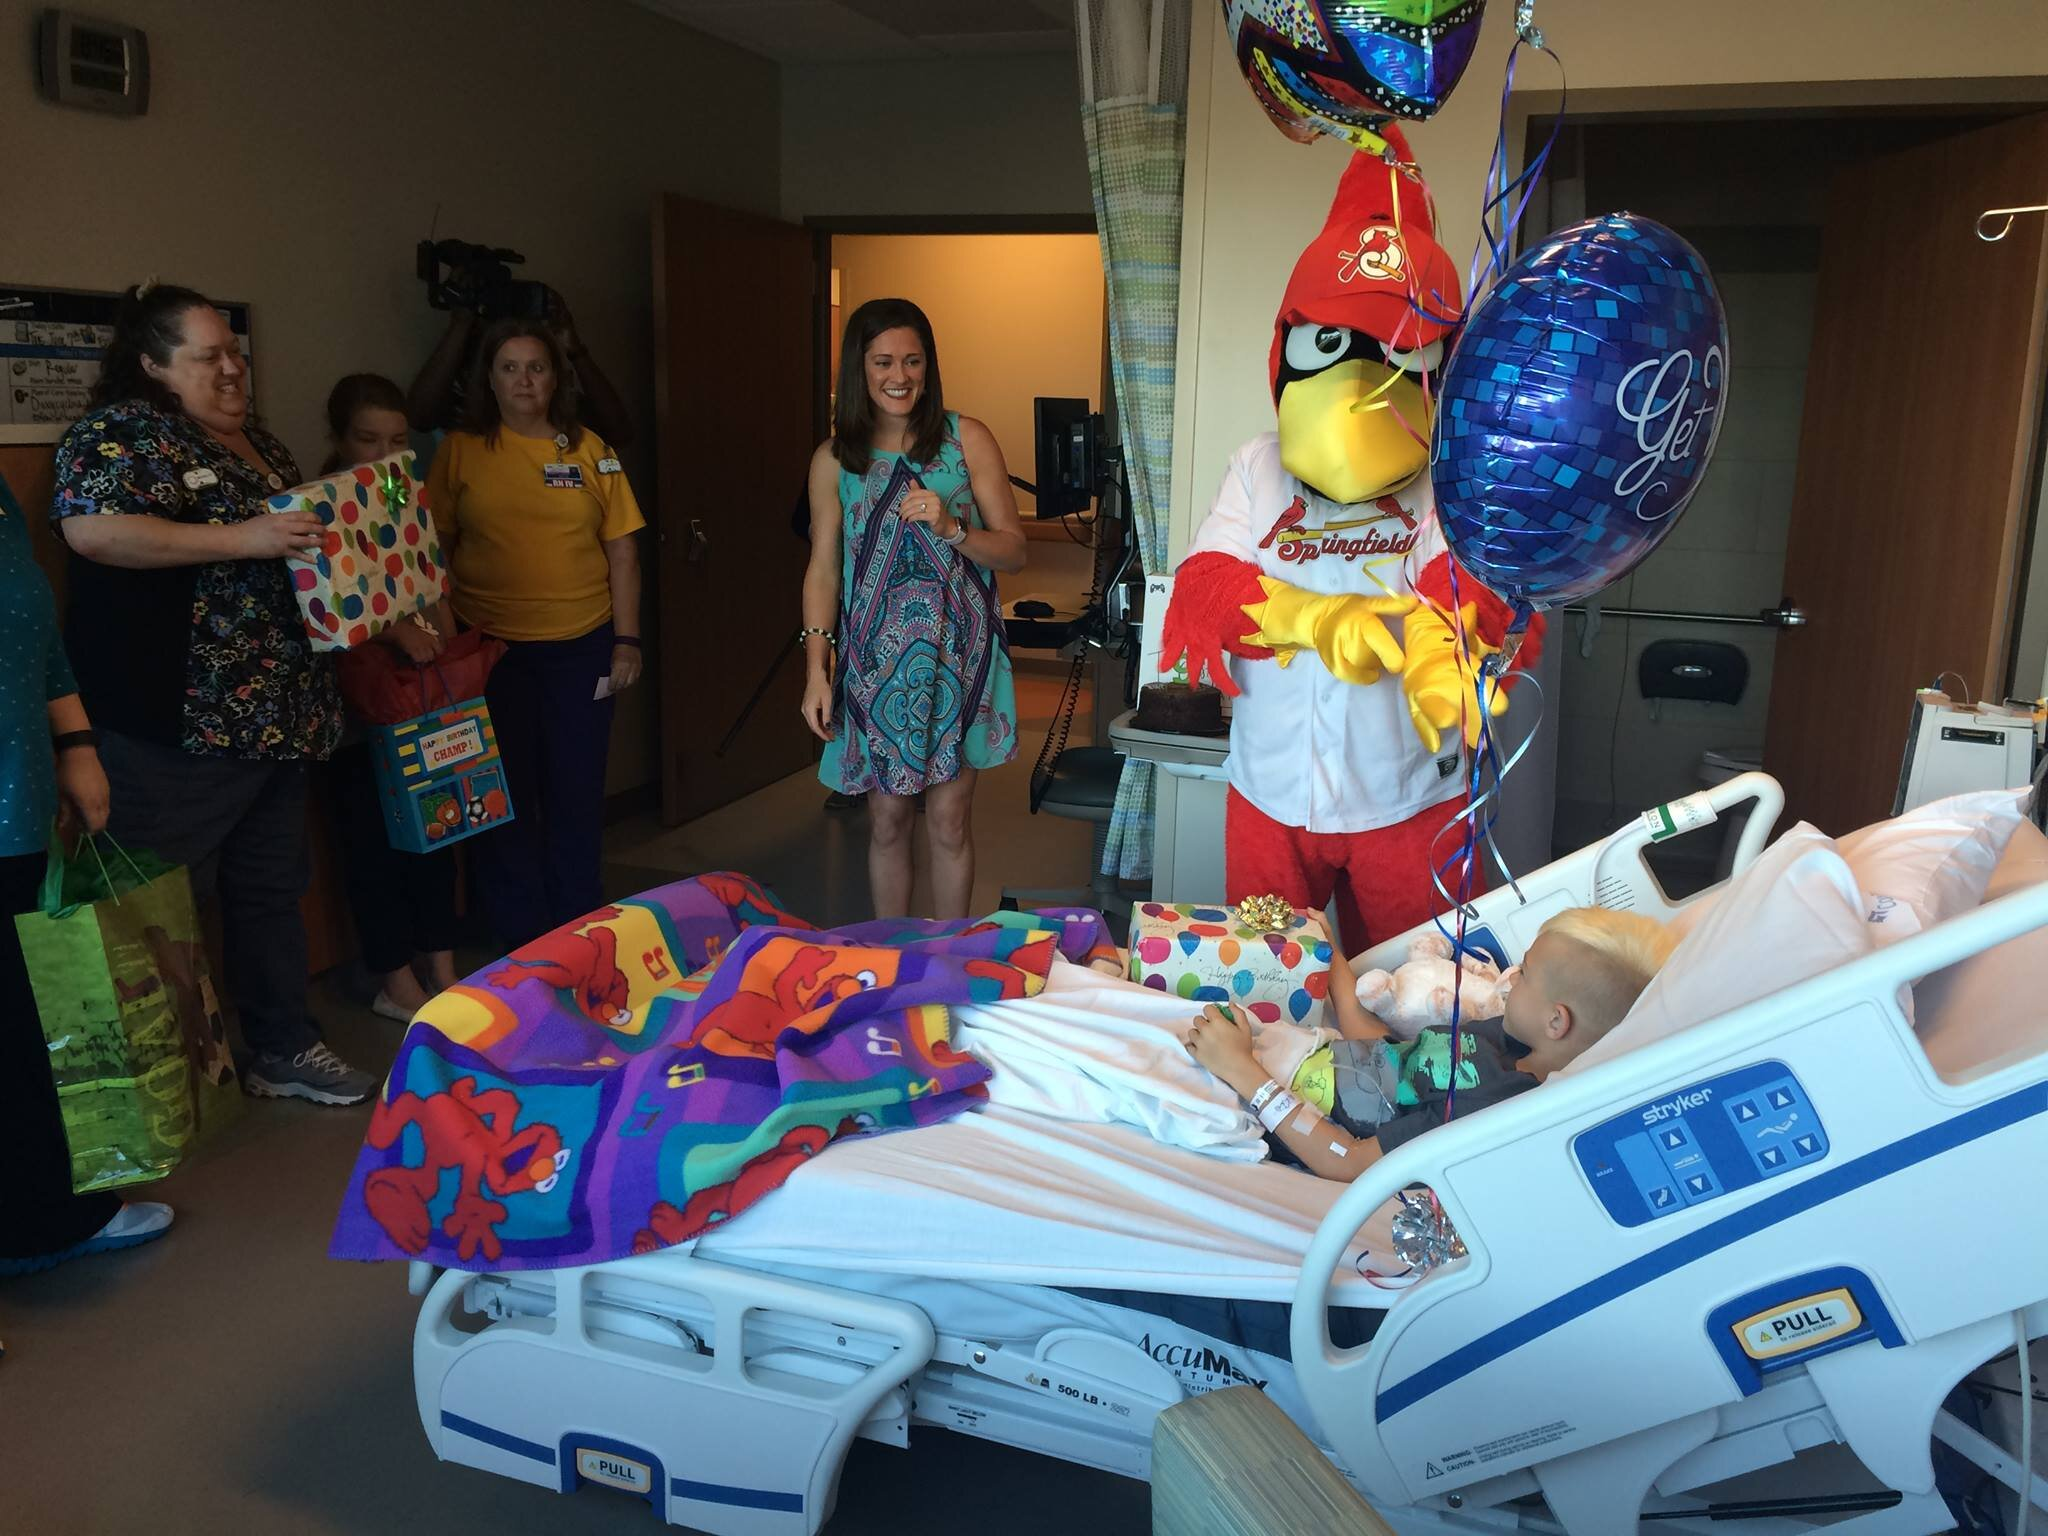 st louis cardinals birthday in hospital